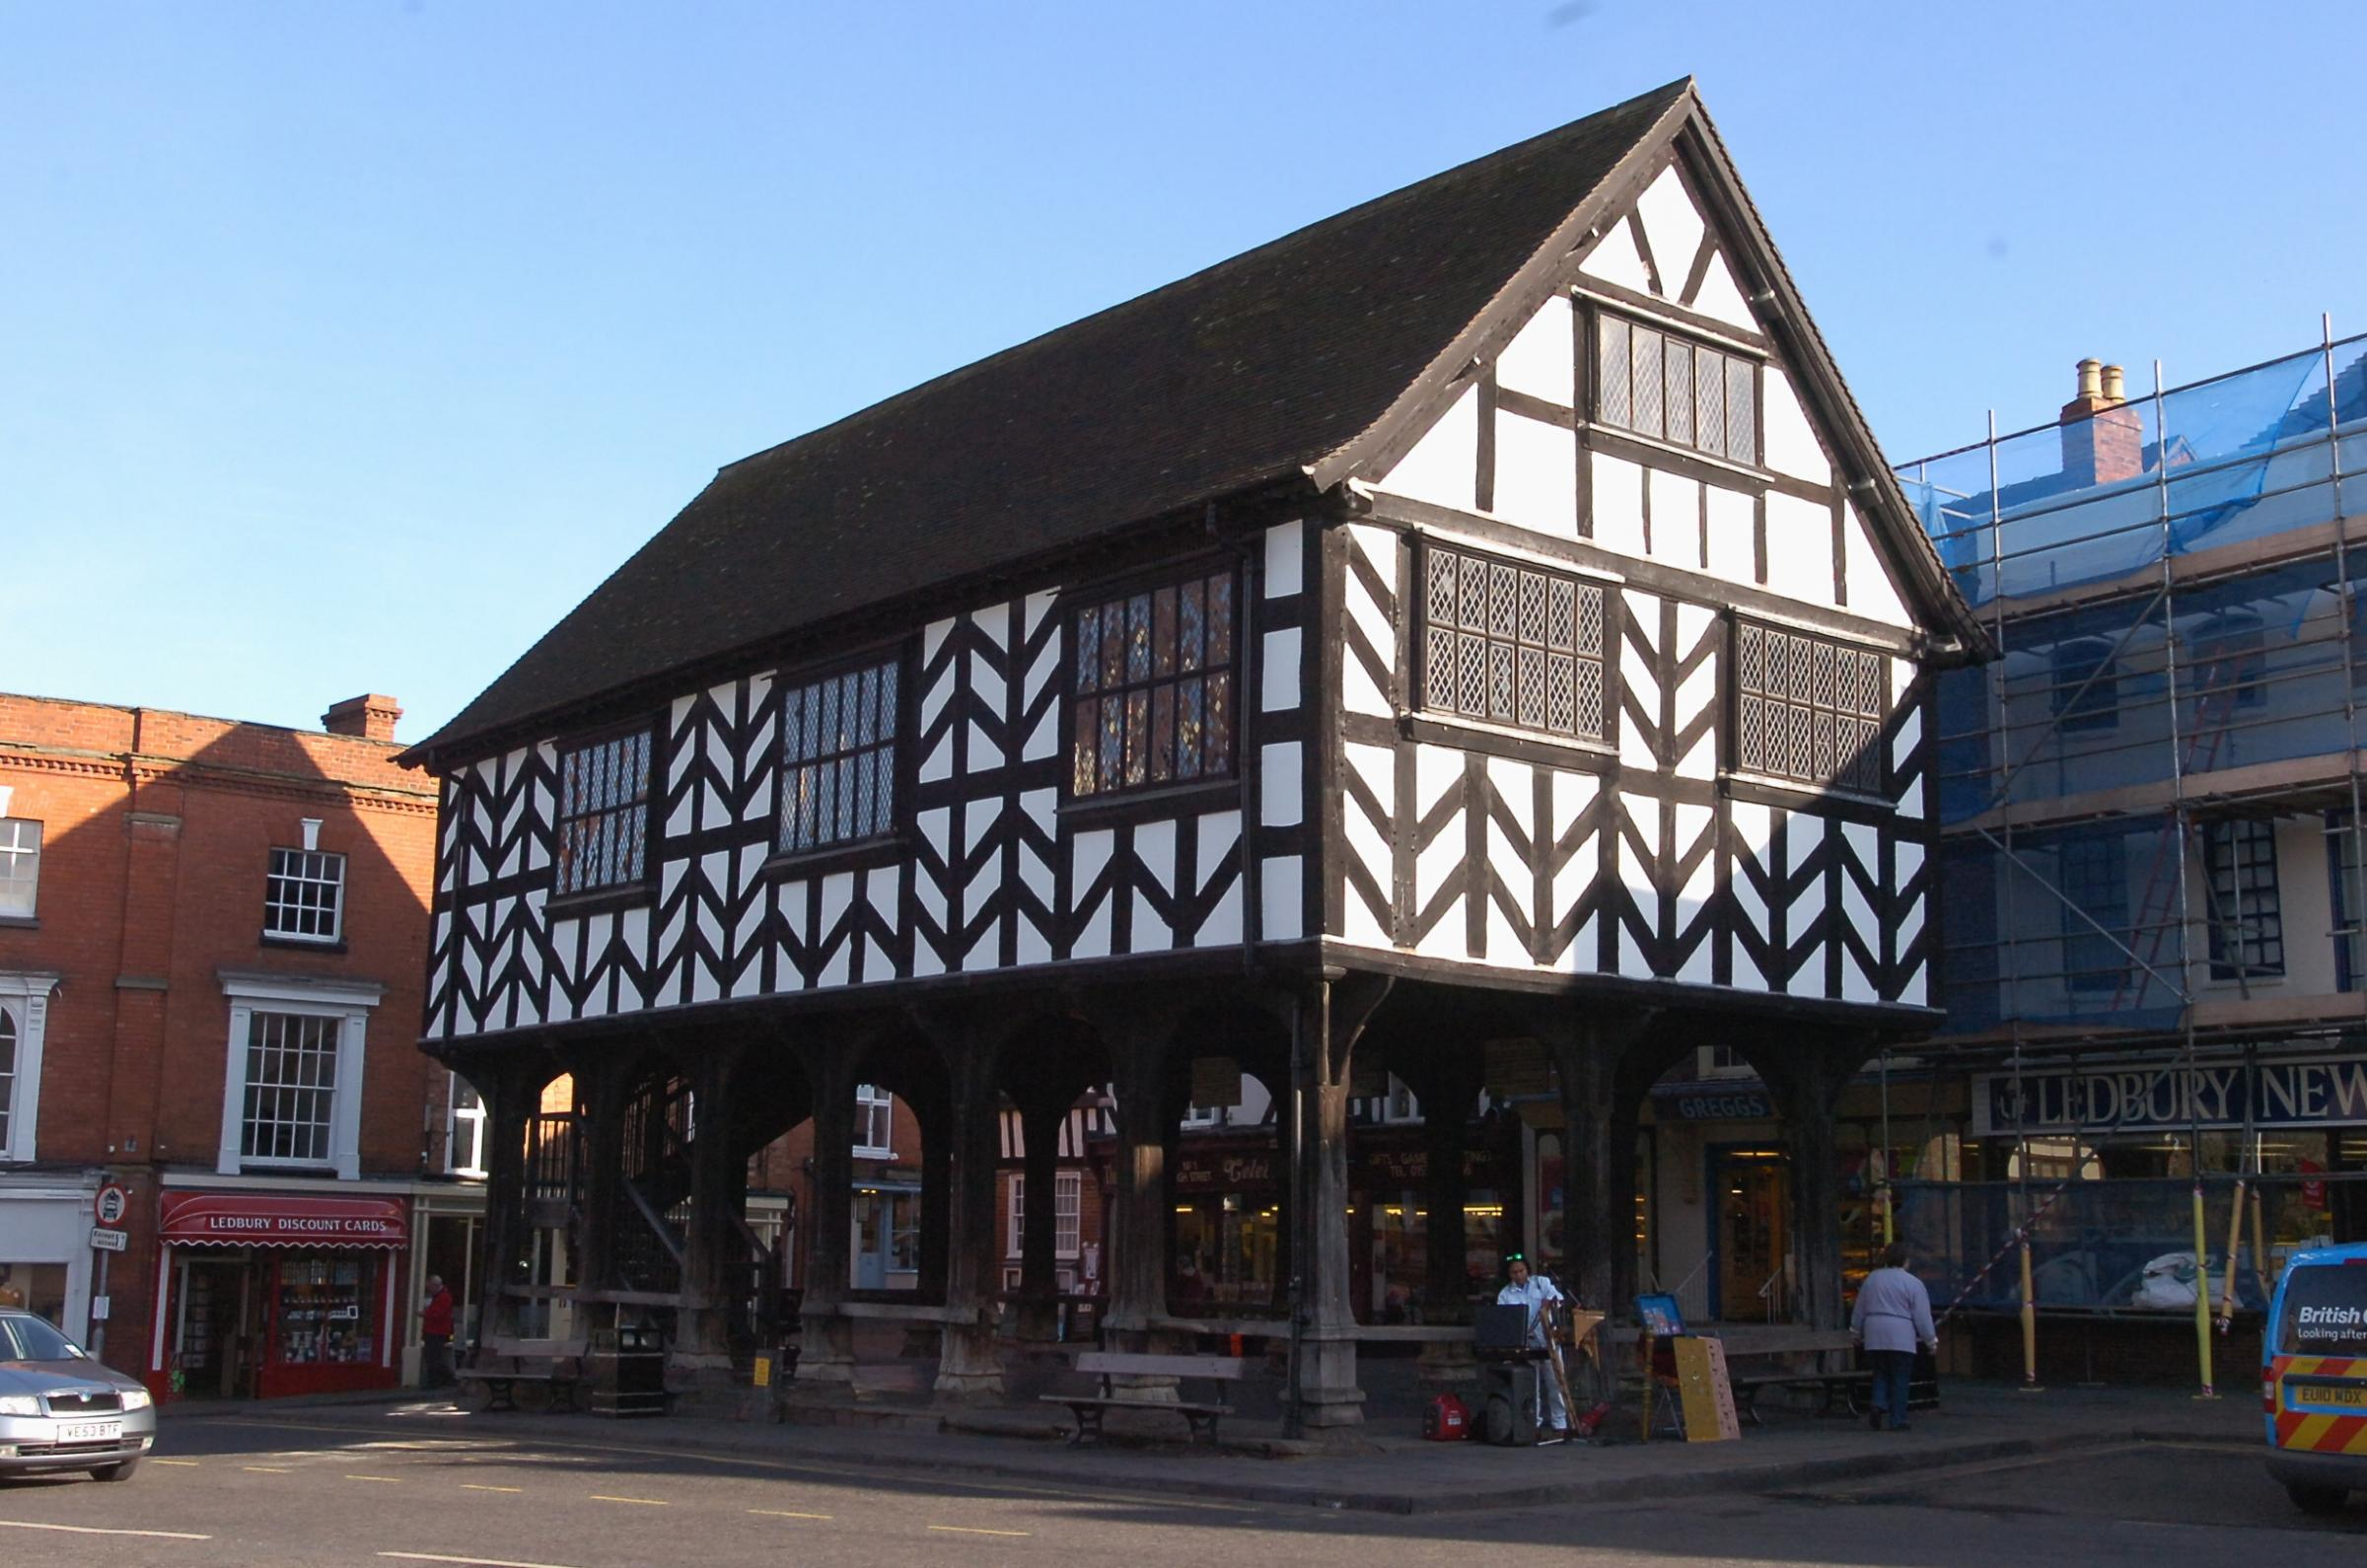 ICON: Ledbury Market House, the traditional meeting place for Ledbury Town Council